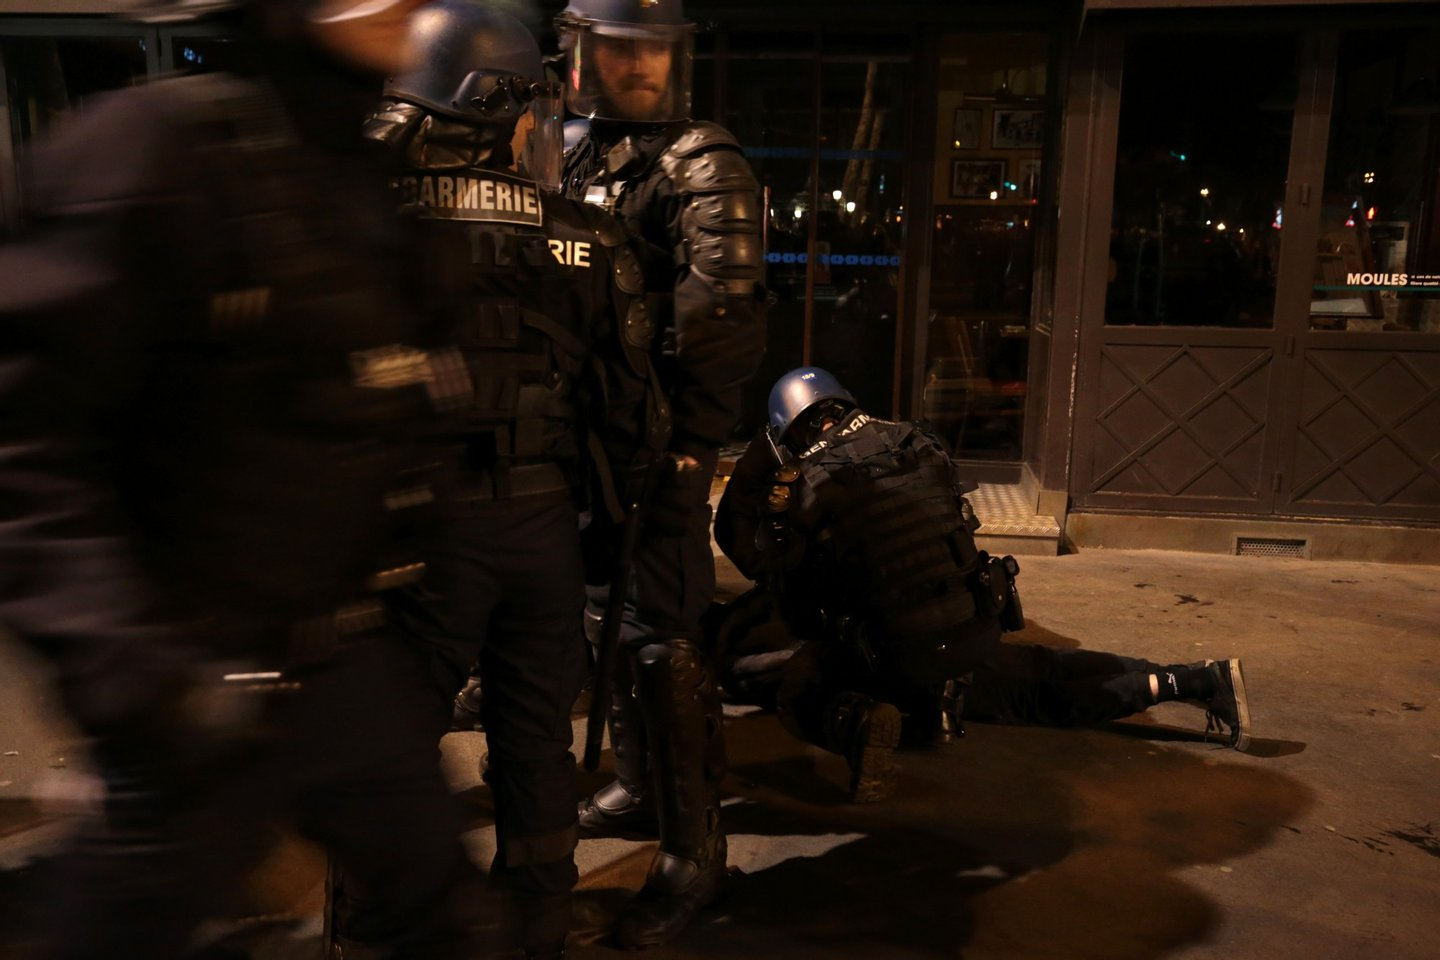 """French Gendarmerie arrest a person as they clear the Place de la Republique in Paris during a protest by the Nuit Debout, or """"Up All Night"""" movement who have been rallying against the French government's proposed labour reforms early on April 29, 2016. Twenty-seven people were arrested and 24 detained during the overnight clashes in the French capital as the police dispersed the protesters who began their began movement on March 31 in opposition to the government's proposed labour reforms. AFP PHOTO / JOEL SAGET / AFP / JOEL SAGET (Photo credit should read JOEL SAGET/AFP/Getty Images)"""